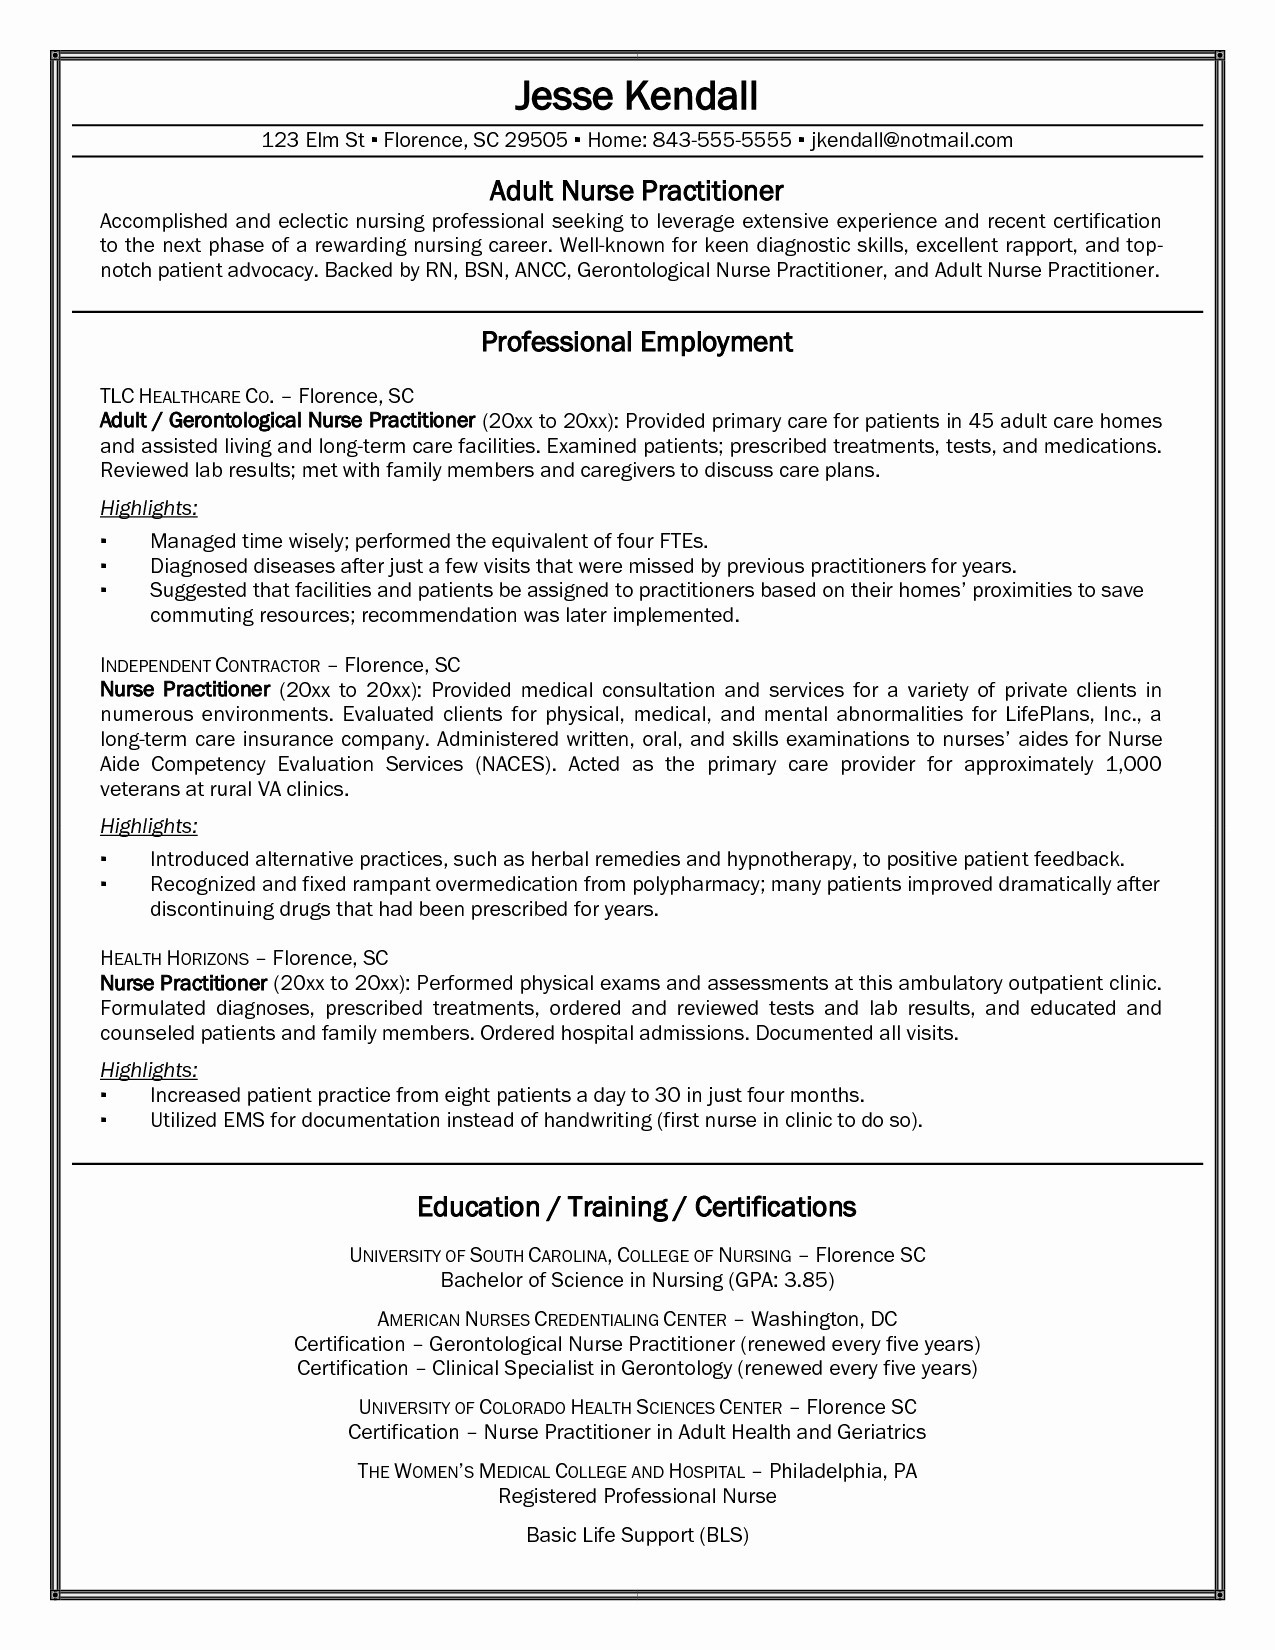 nurse practitioner resume example-Experienced Rn Resume Fresh Nurse Resume 0d Wallpapers 42 Beautiful 12-b